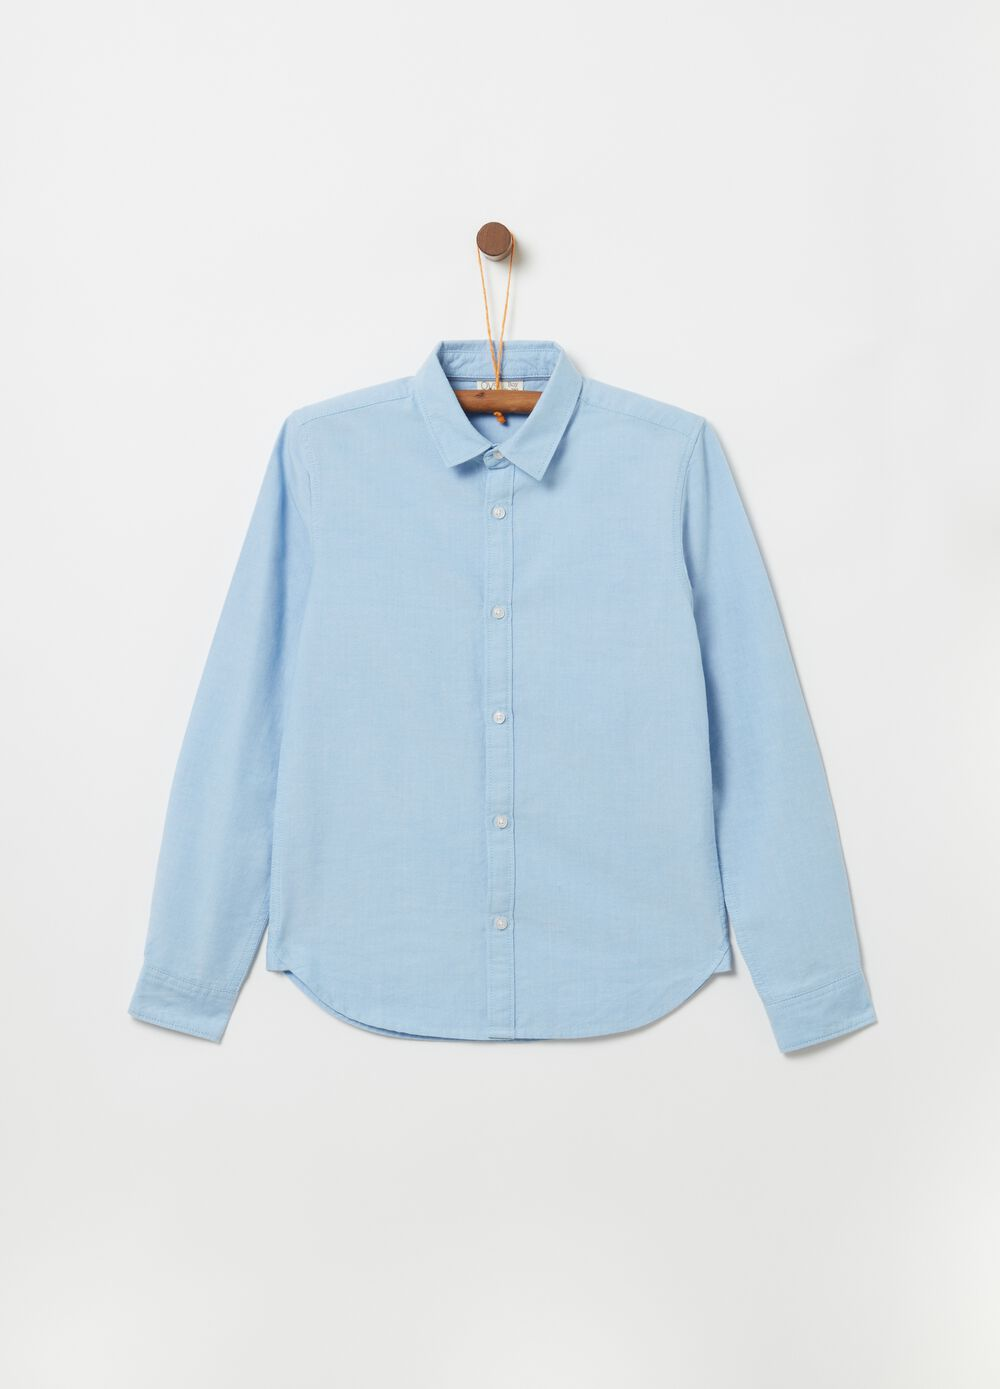 Cotton piquet shirt by Maui and Sons